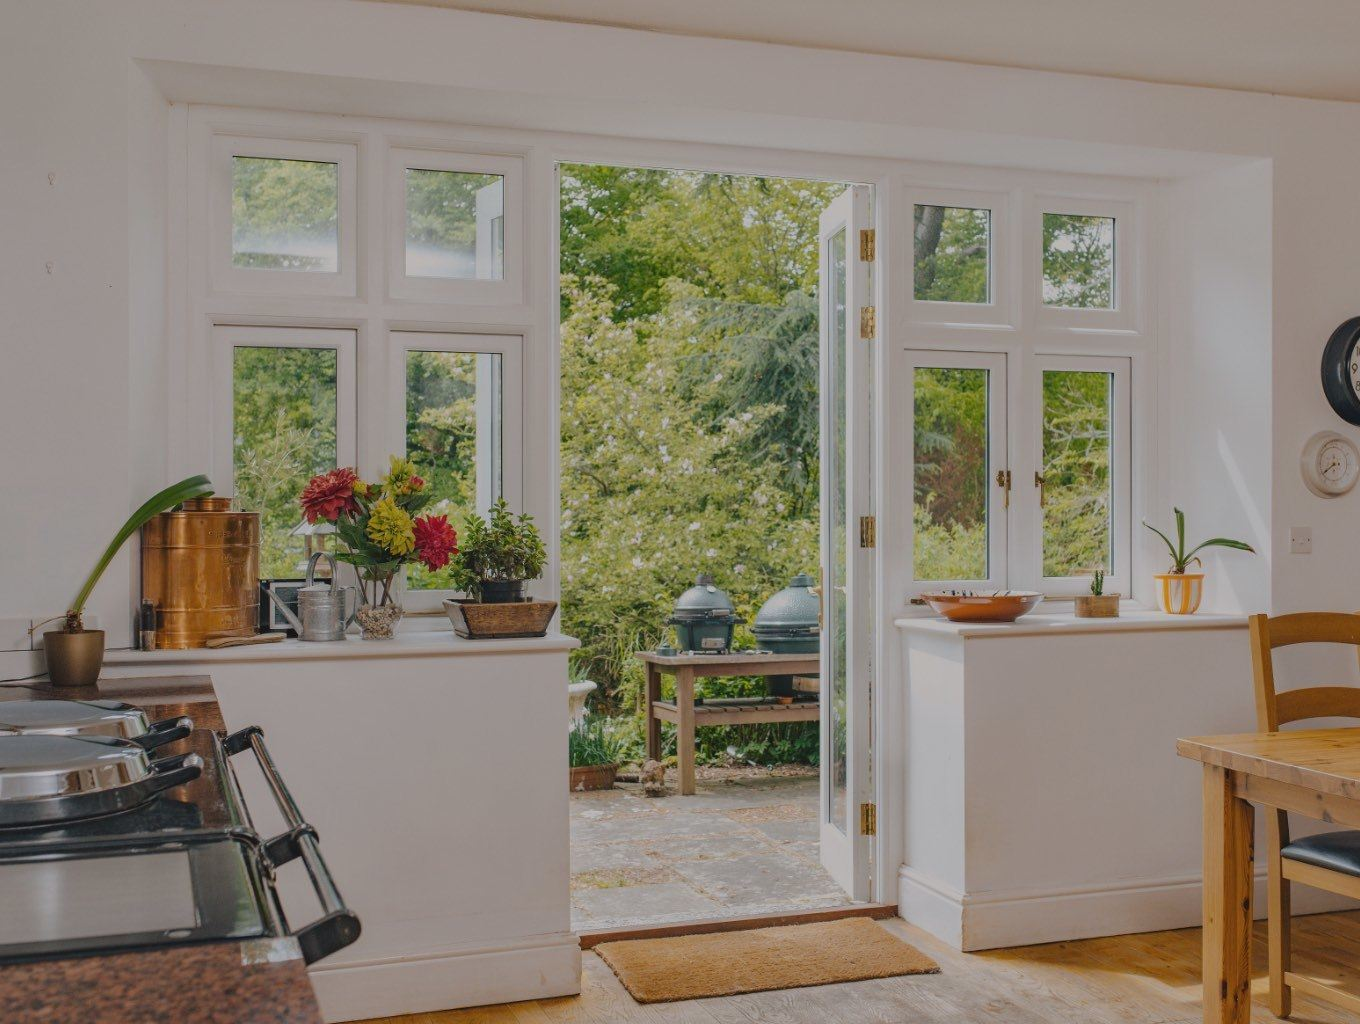 internal view of bespoke timber windows